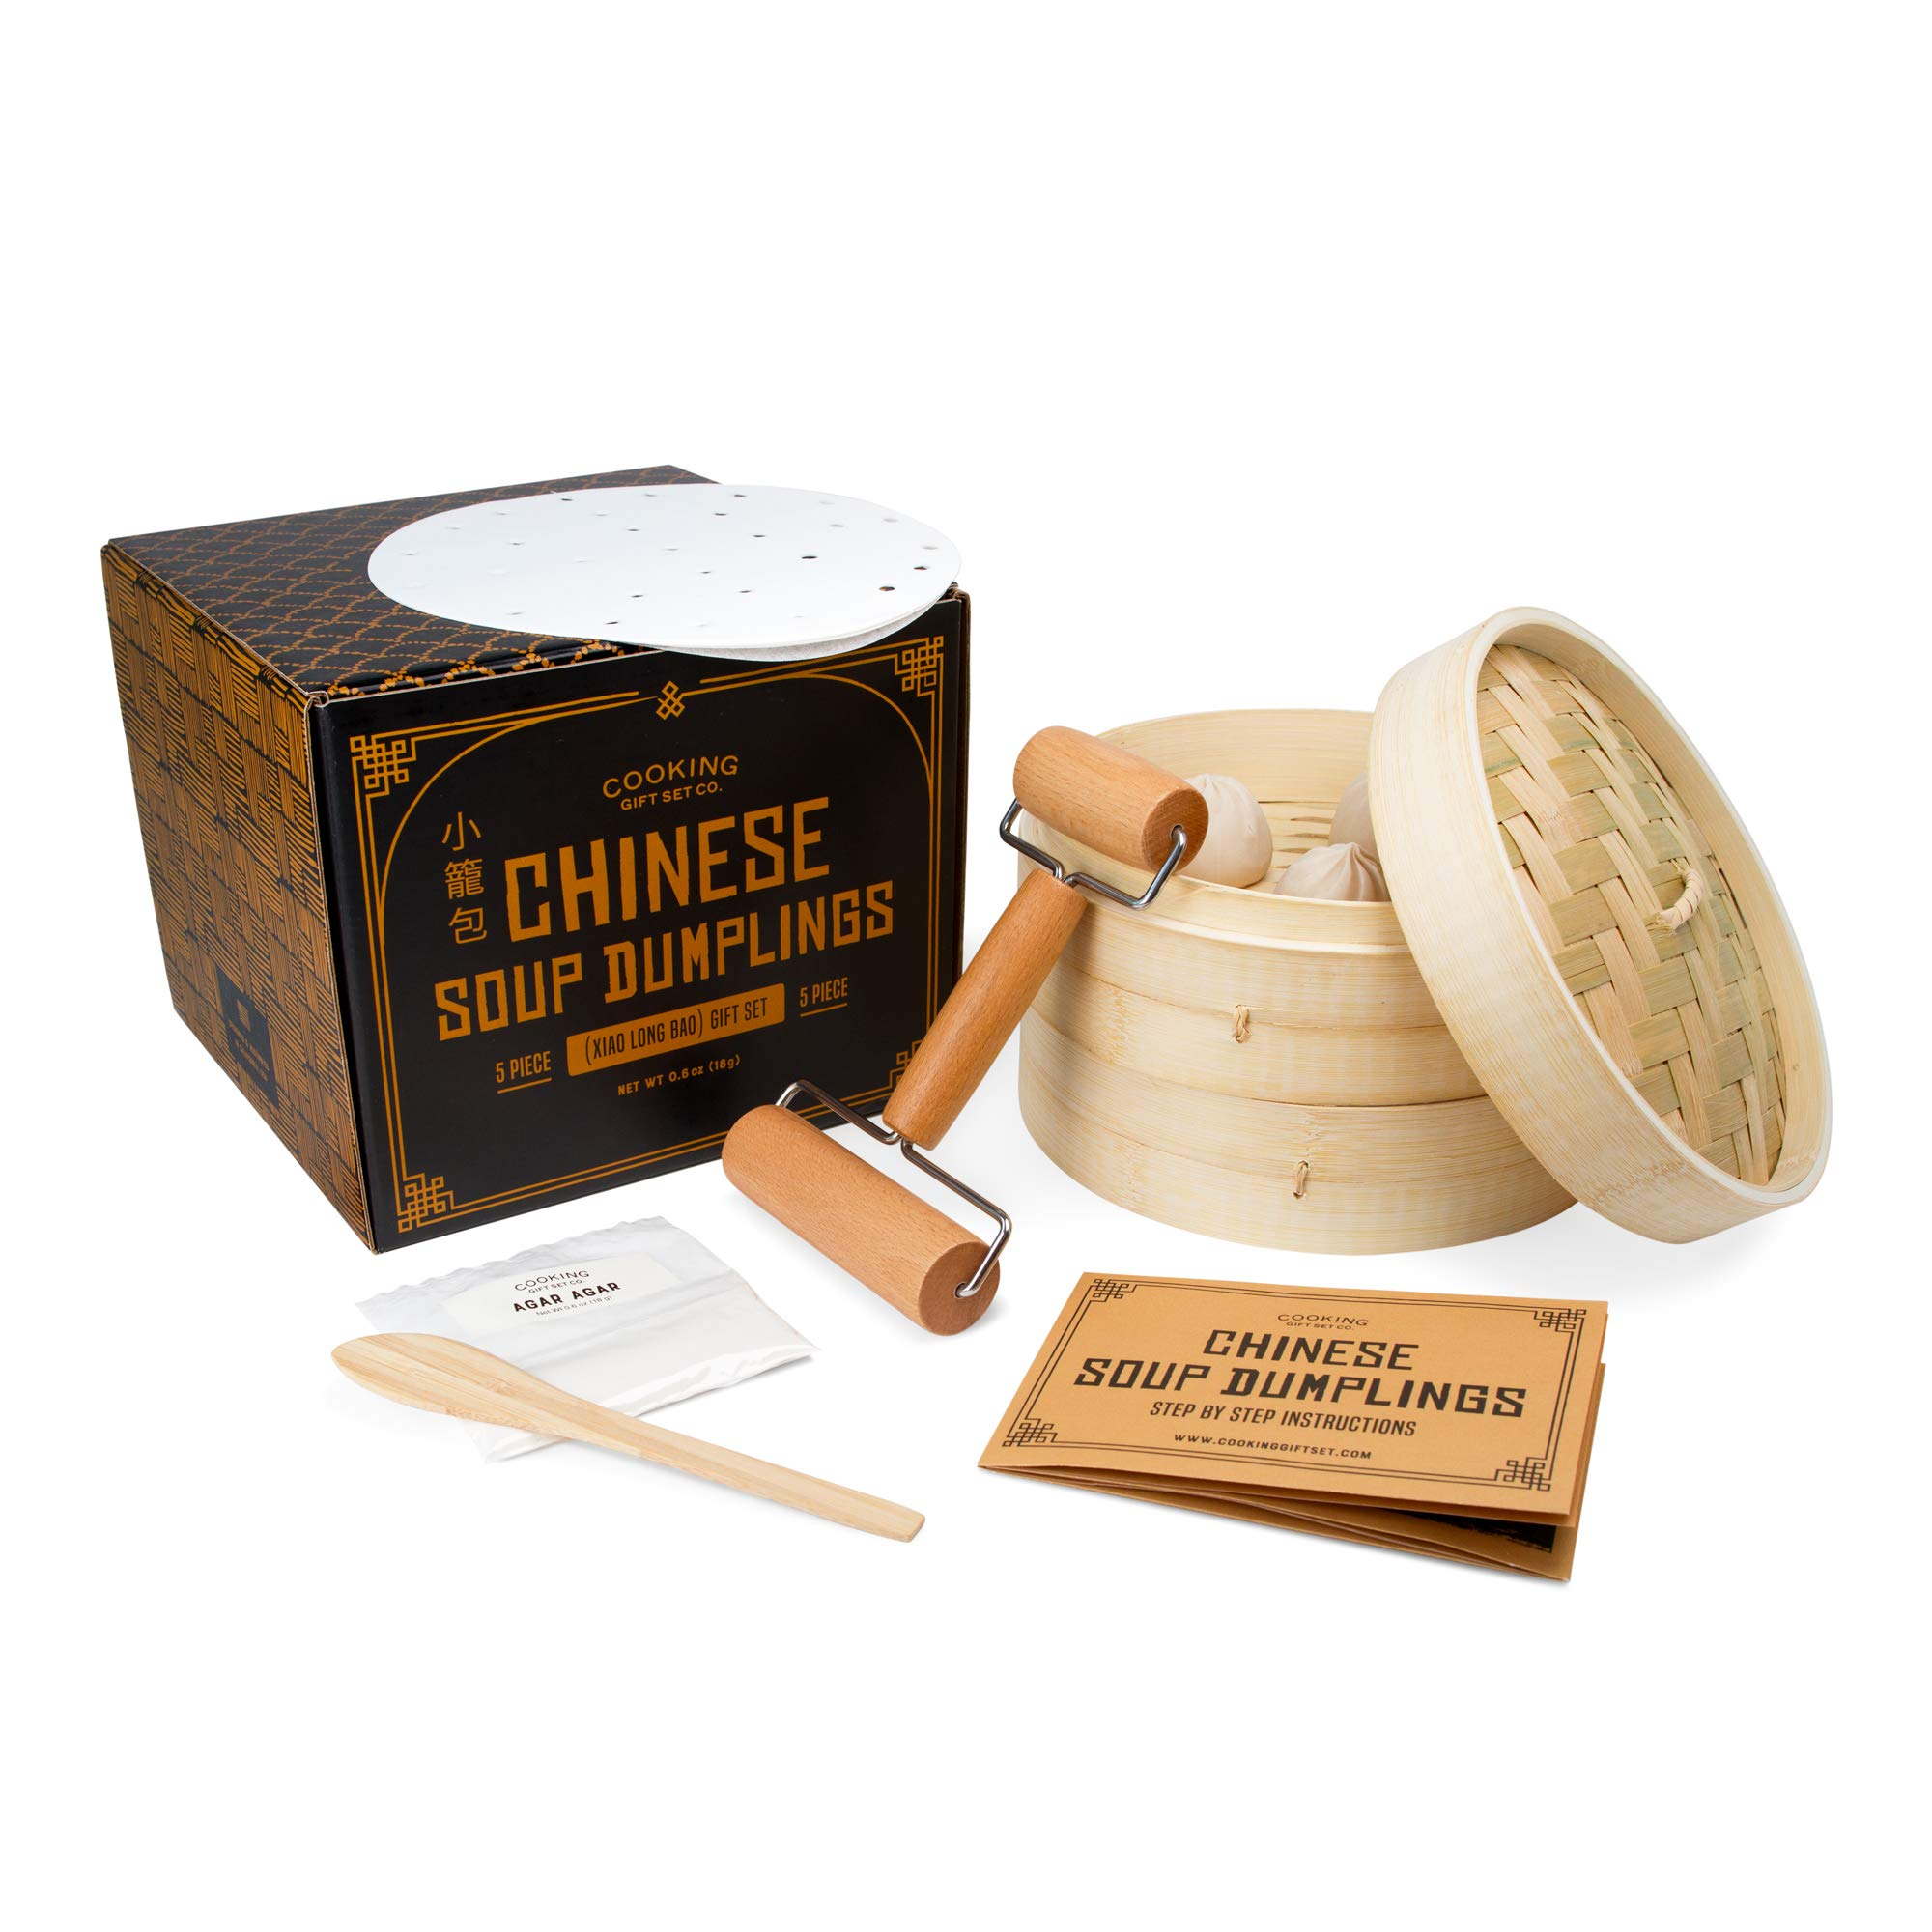 Cooking Gift Set | Chinese Soup Dumpling Bamboo Steamer Basket Set (5 PC) | Dumpling Maker for Unique Gifts for Mom, Housewarming Gifts for New Home, and Gifts for Men by Cooking Gift Set